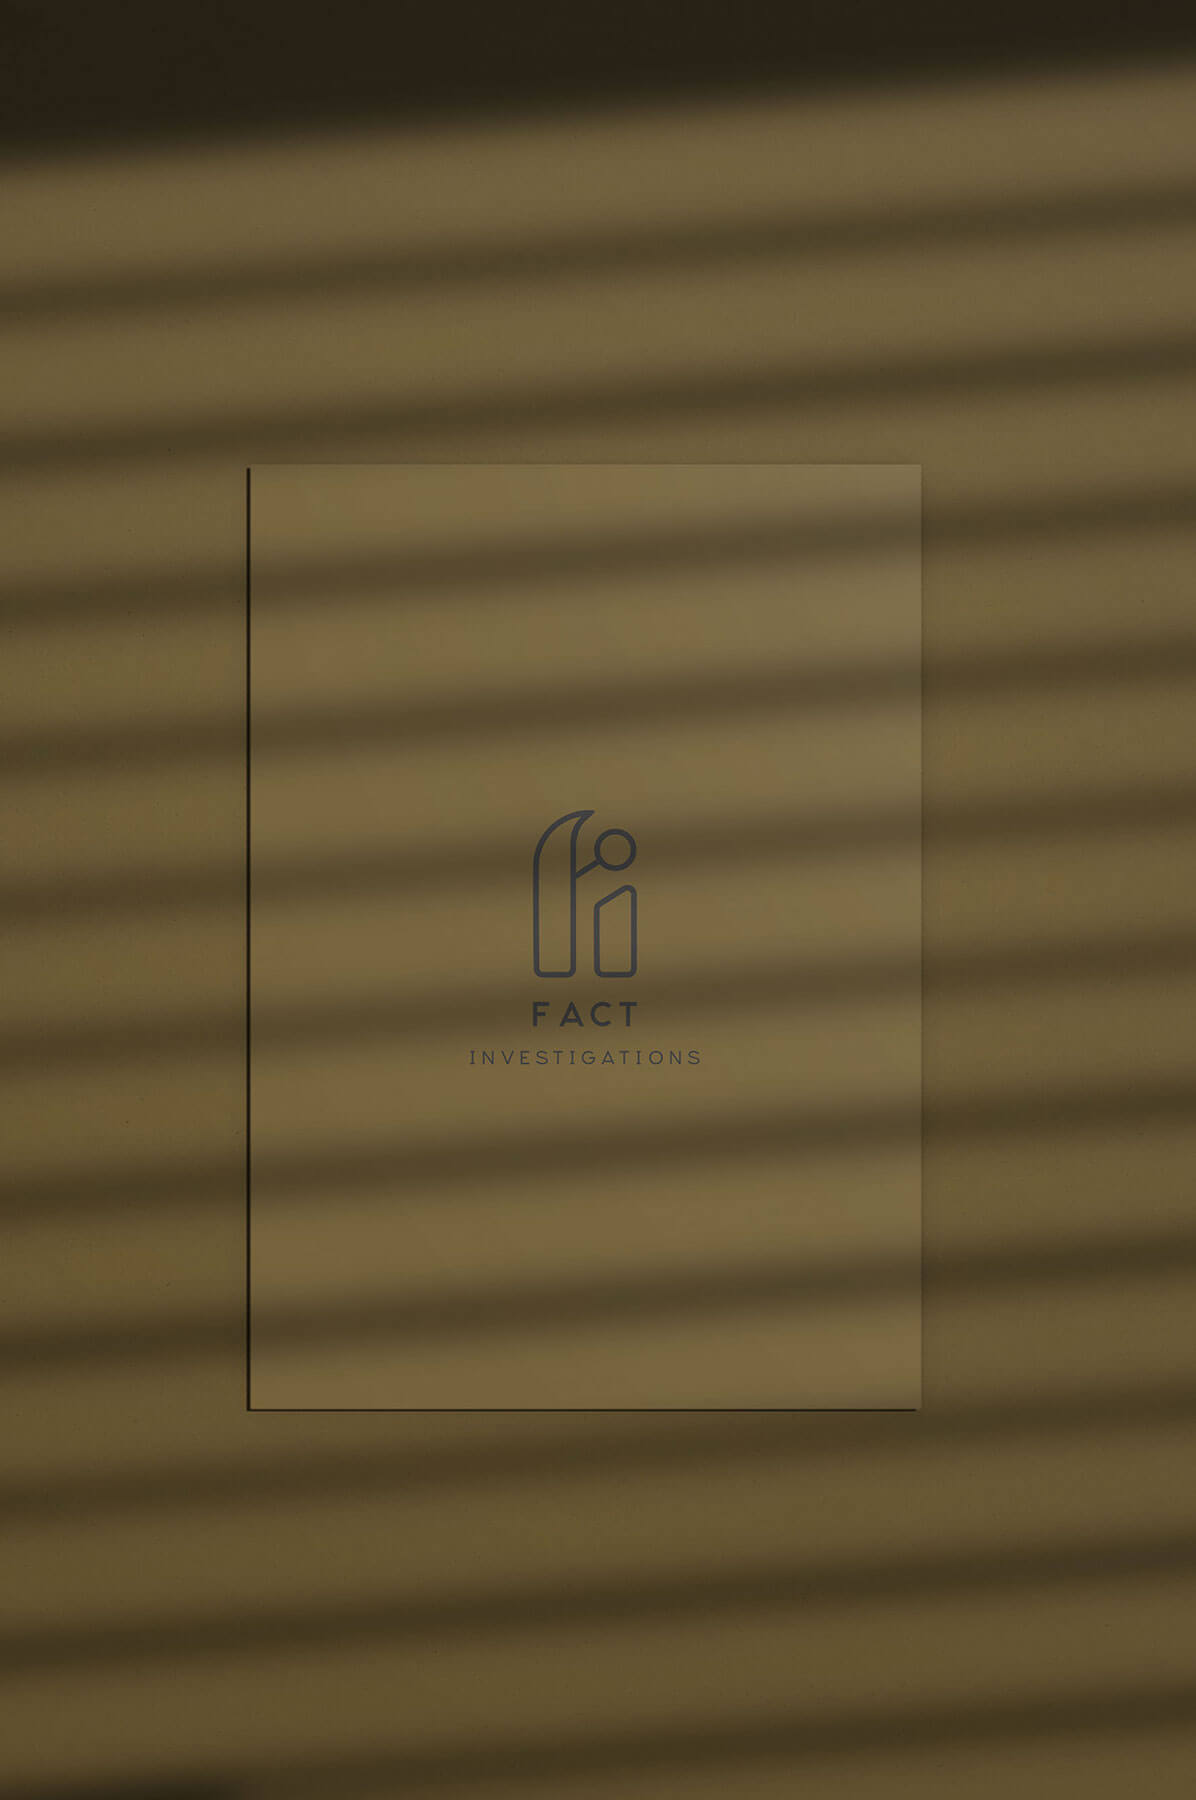 logo fact investigation